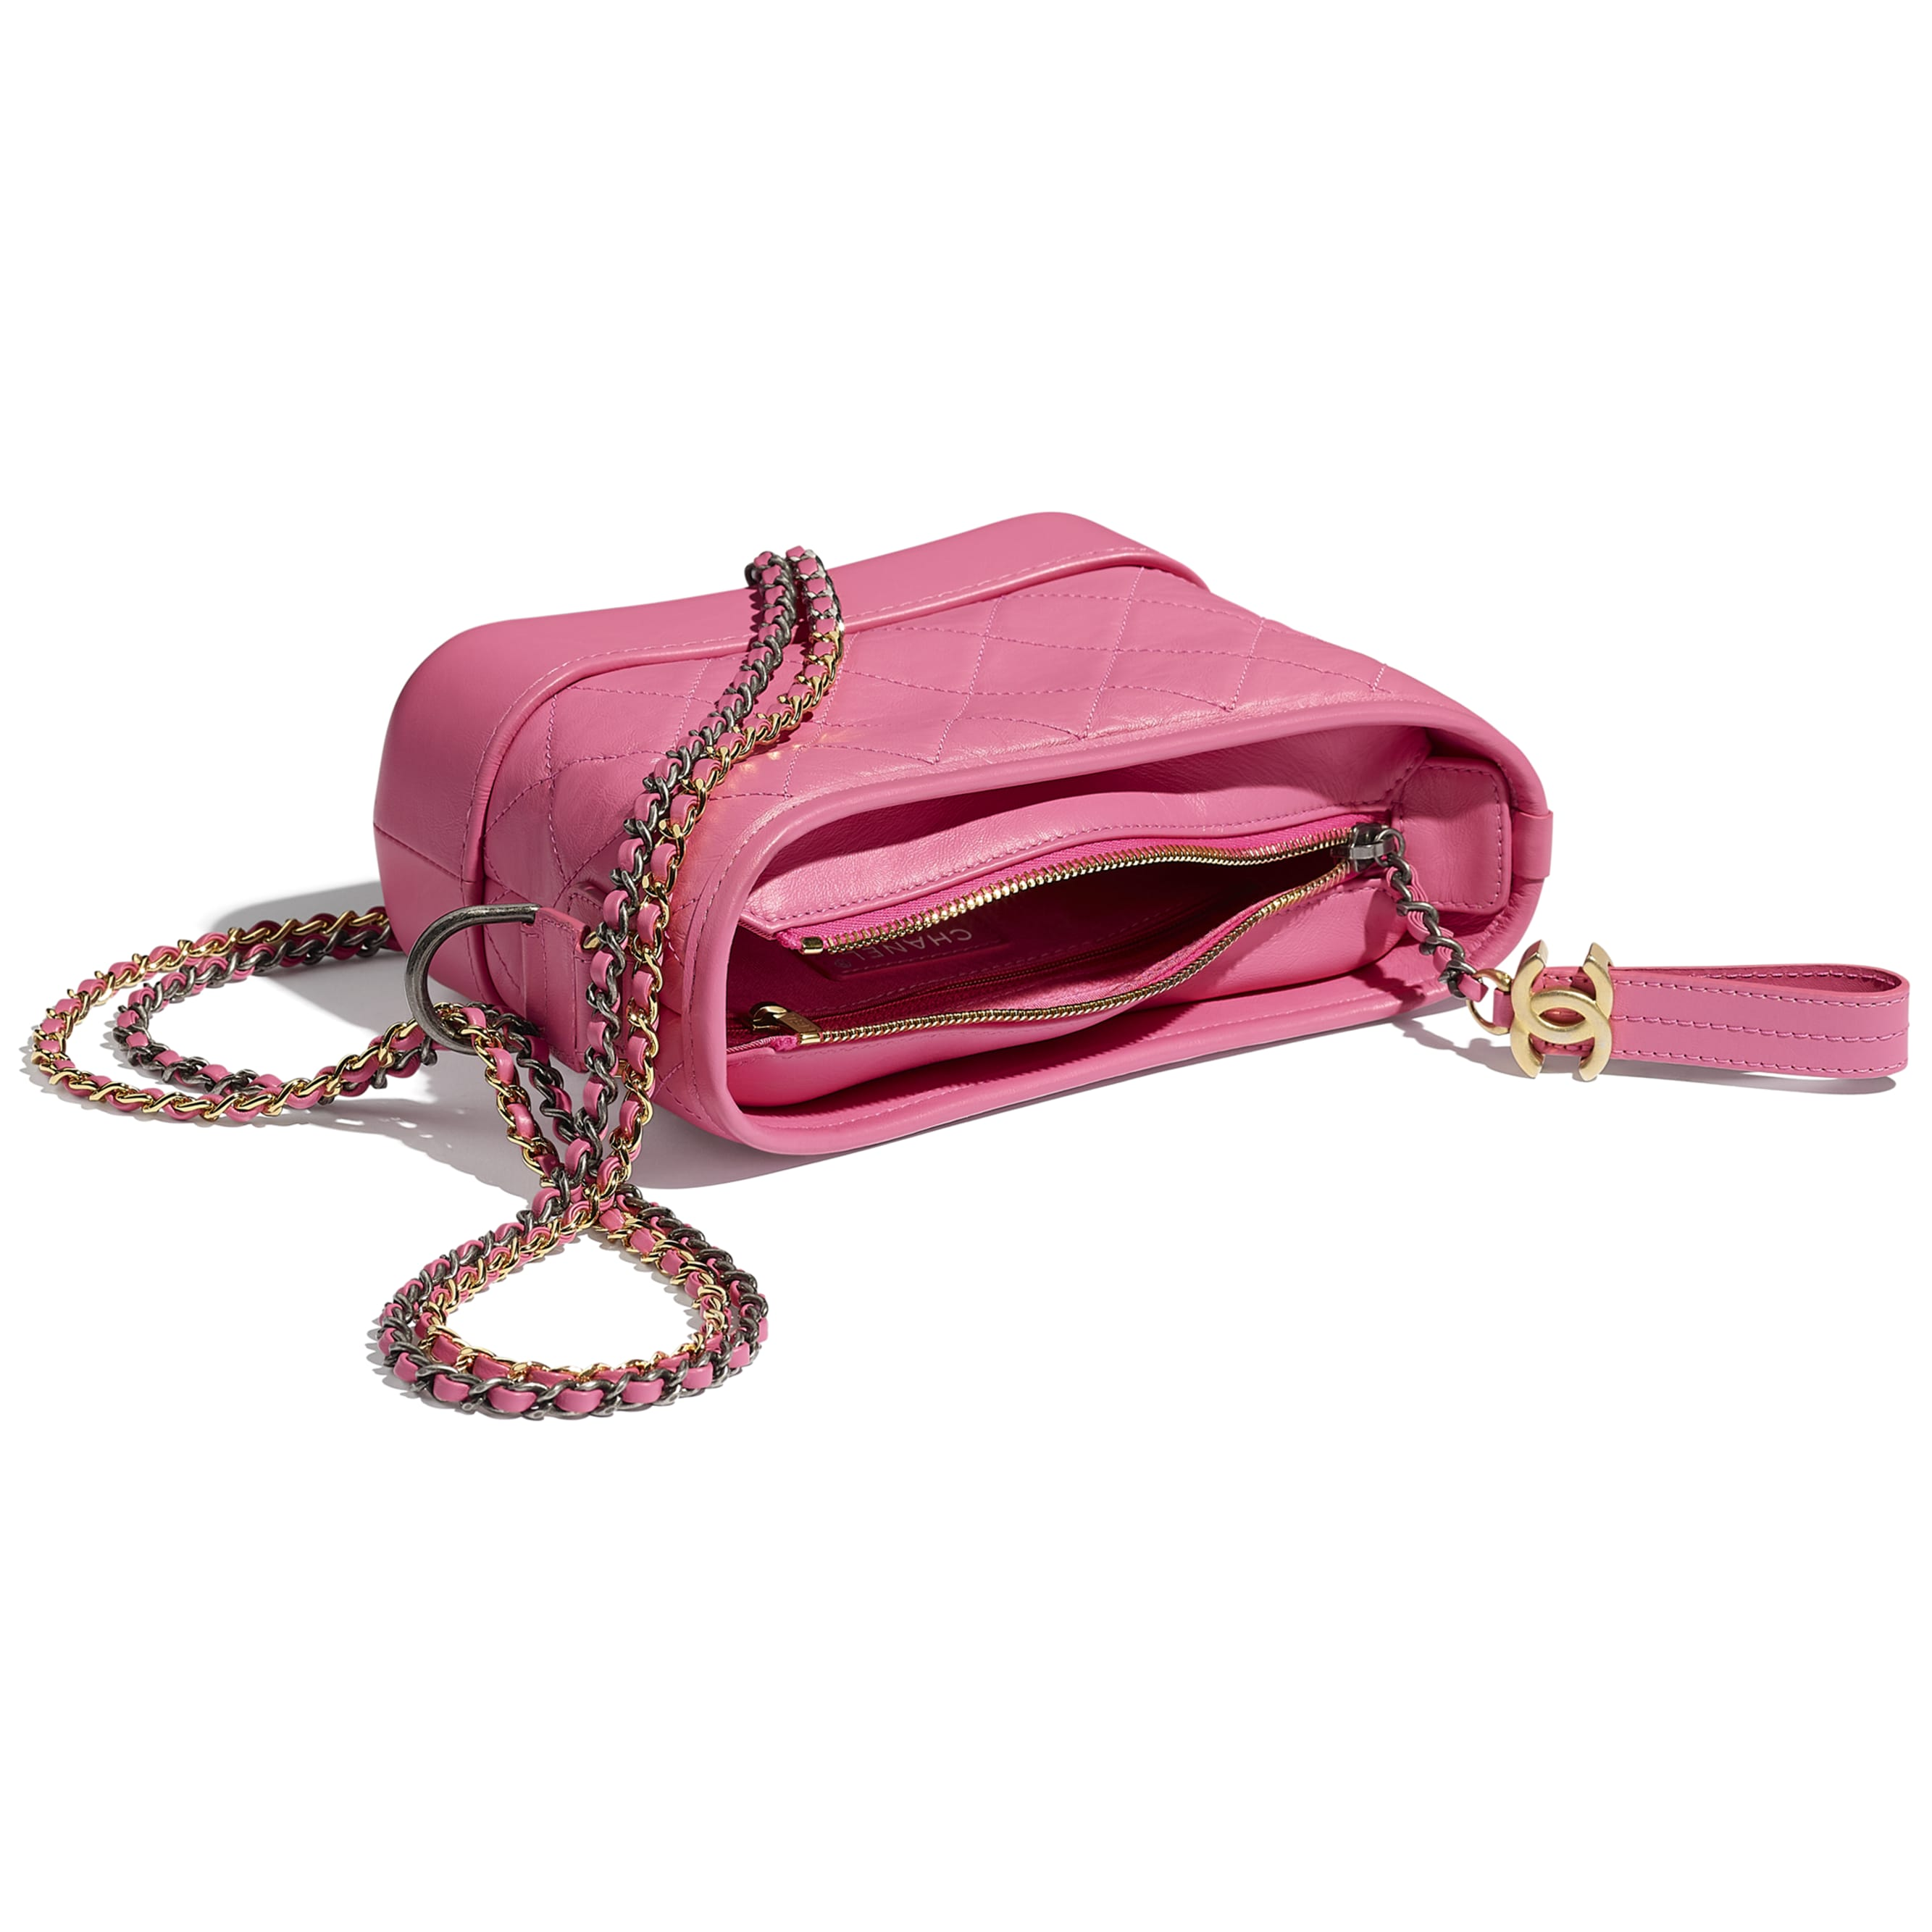 CHANEL'S GABRIELLE Small Hobo Bag - Pink - Aged Calfskin, Smooth Calfskin, Silver-Tone & Gold-Tone Metal - Other view - see standard sized version